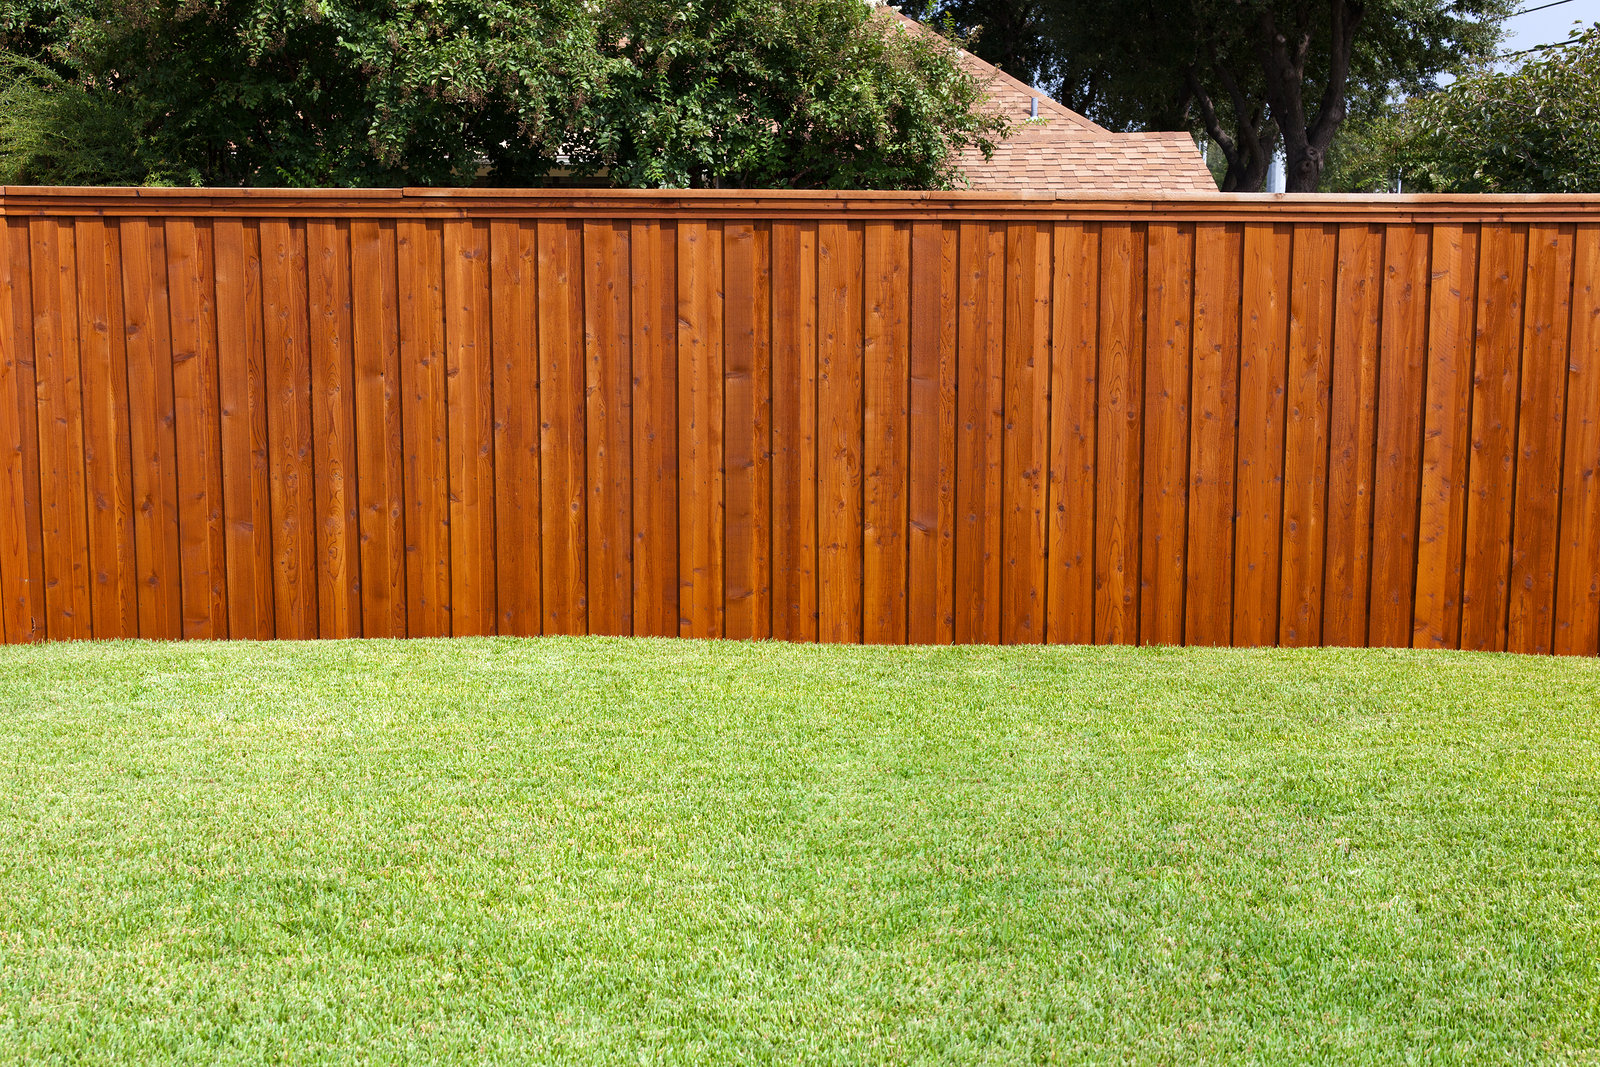 6 Reasons To Install A Fence Around Your Backyard Themocracy regarding How Much Does A Backyard Fence Cost